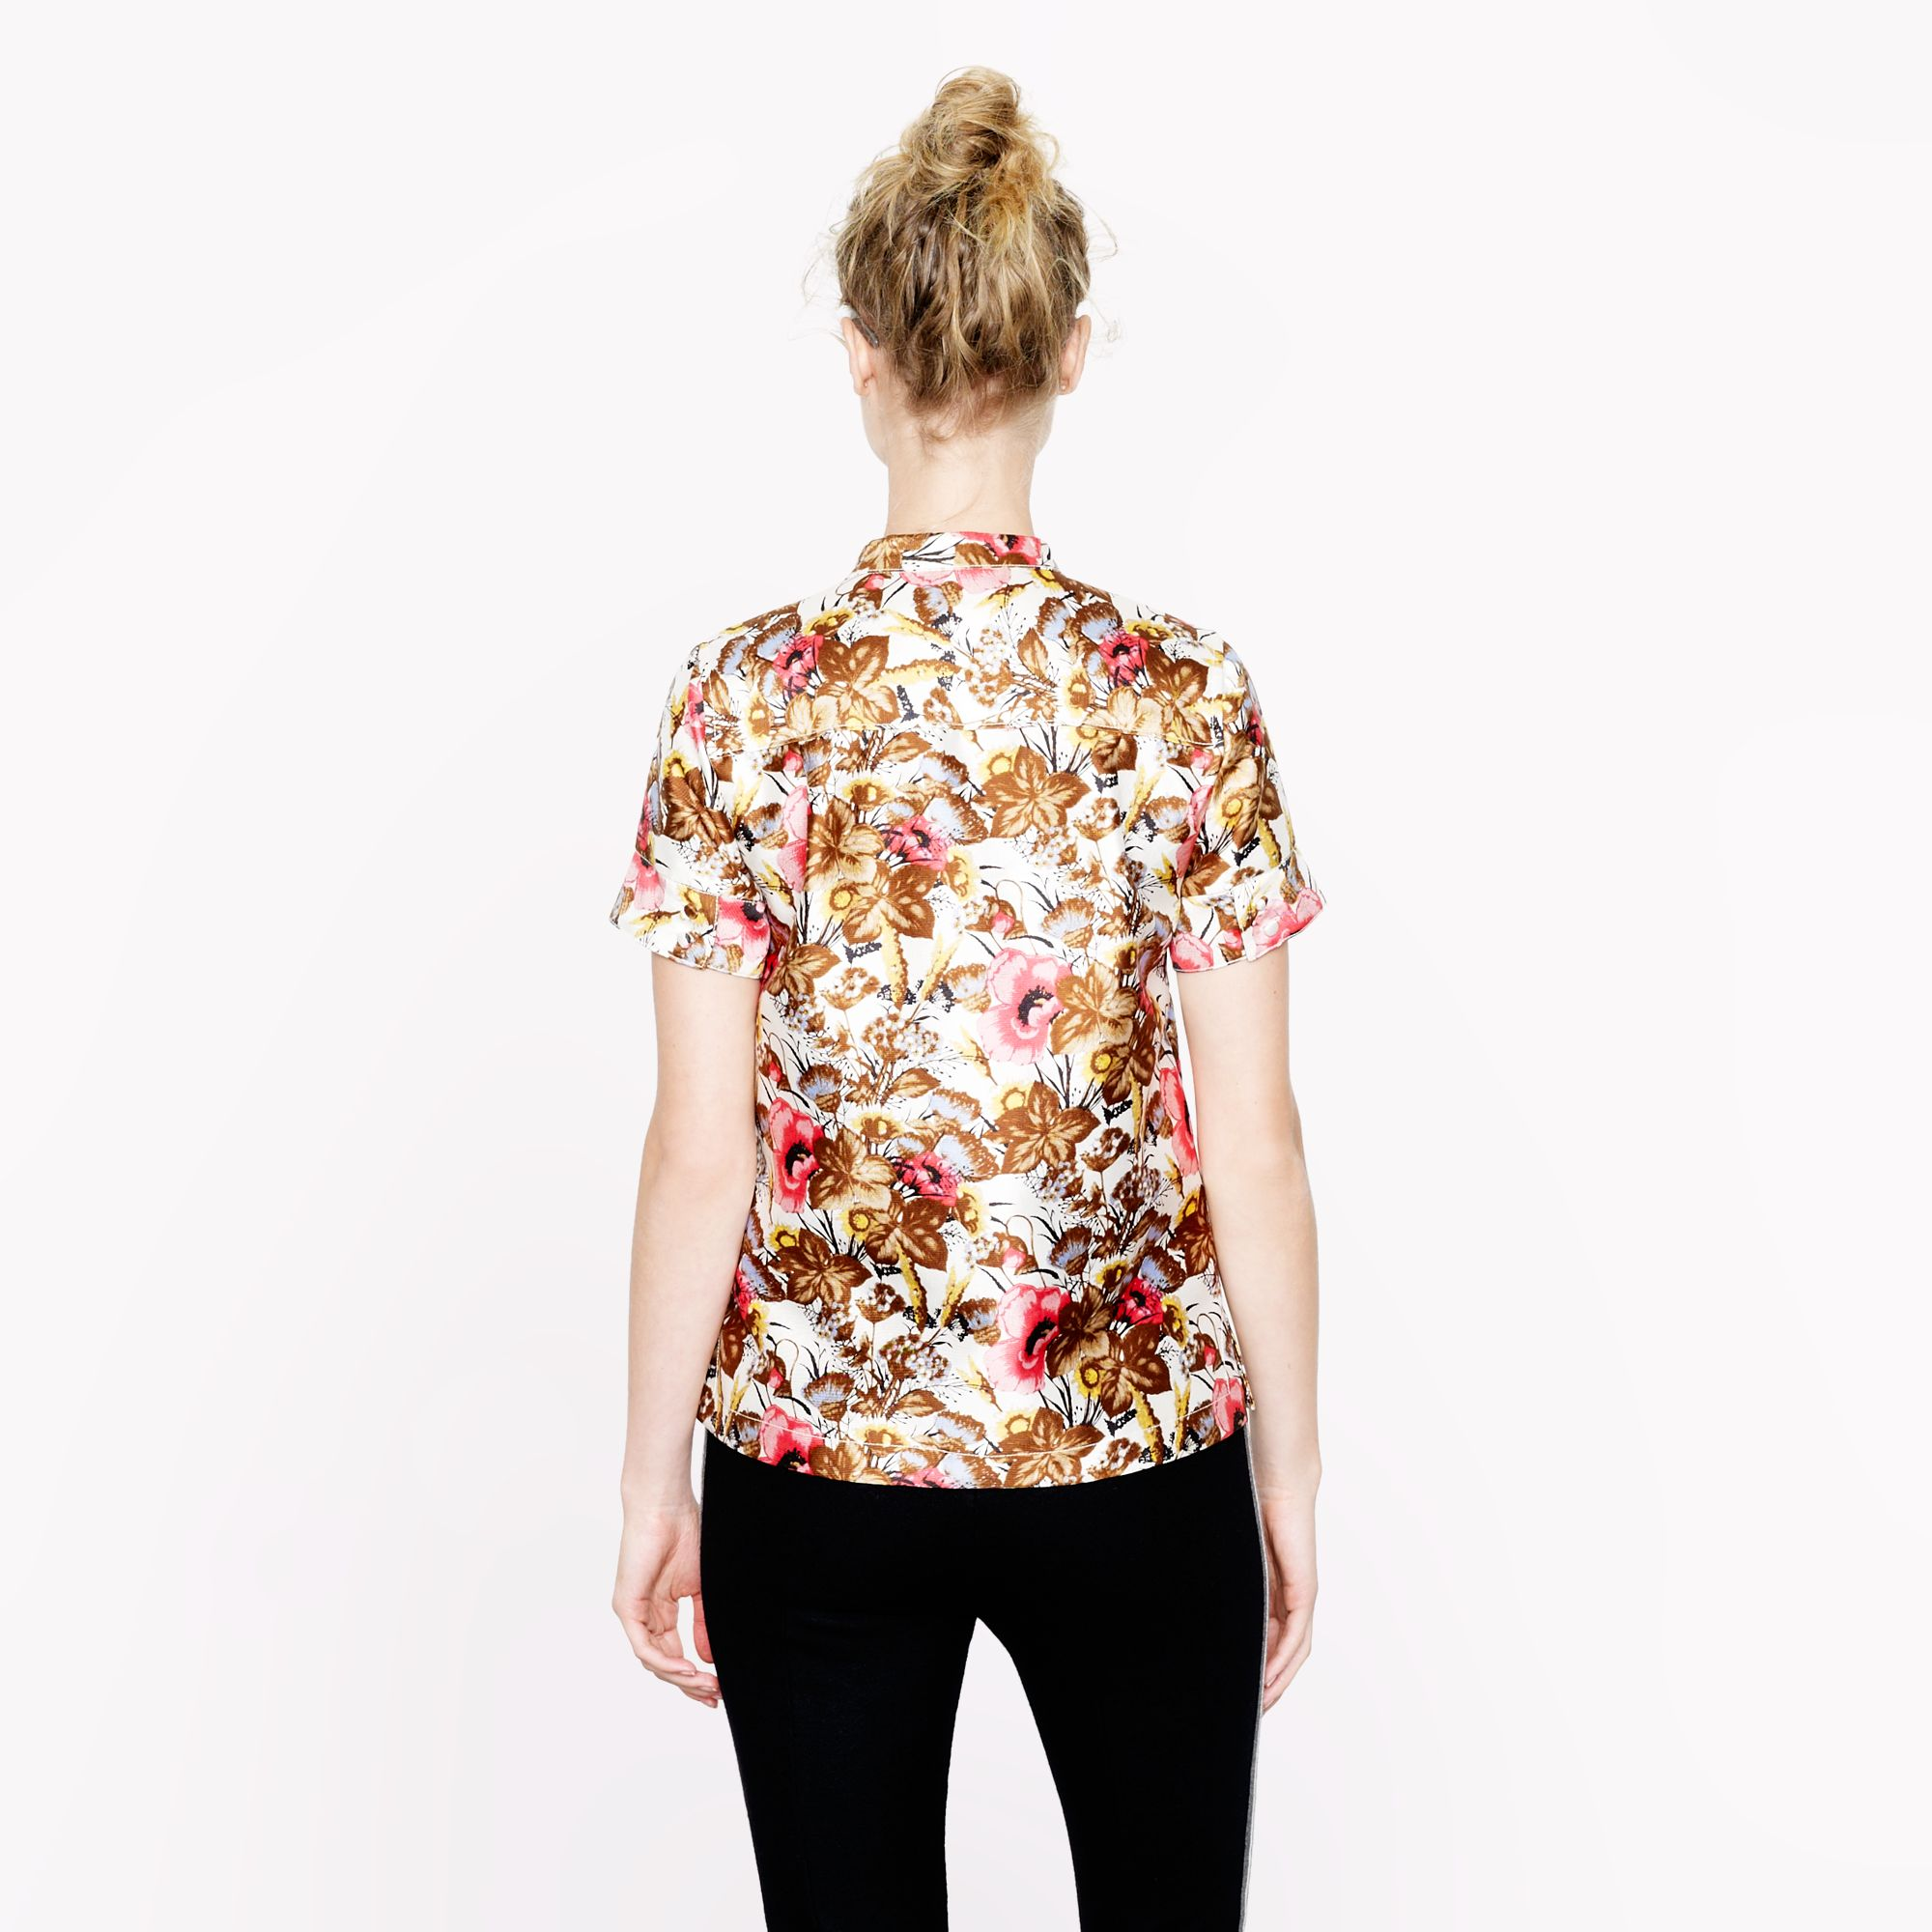 J.Crew Collection Antiqued Floral Top in Pink